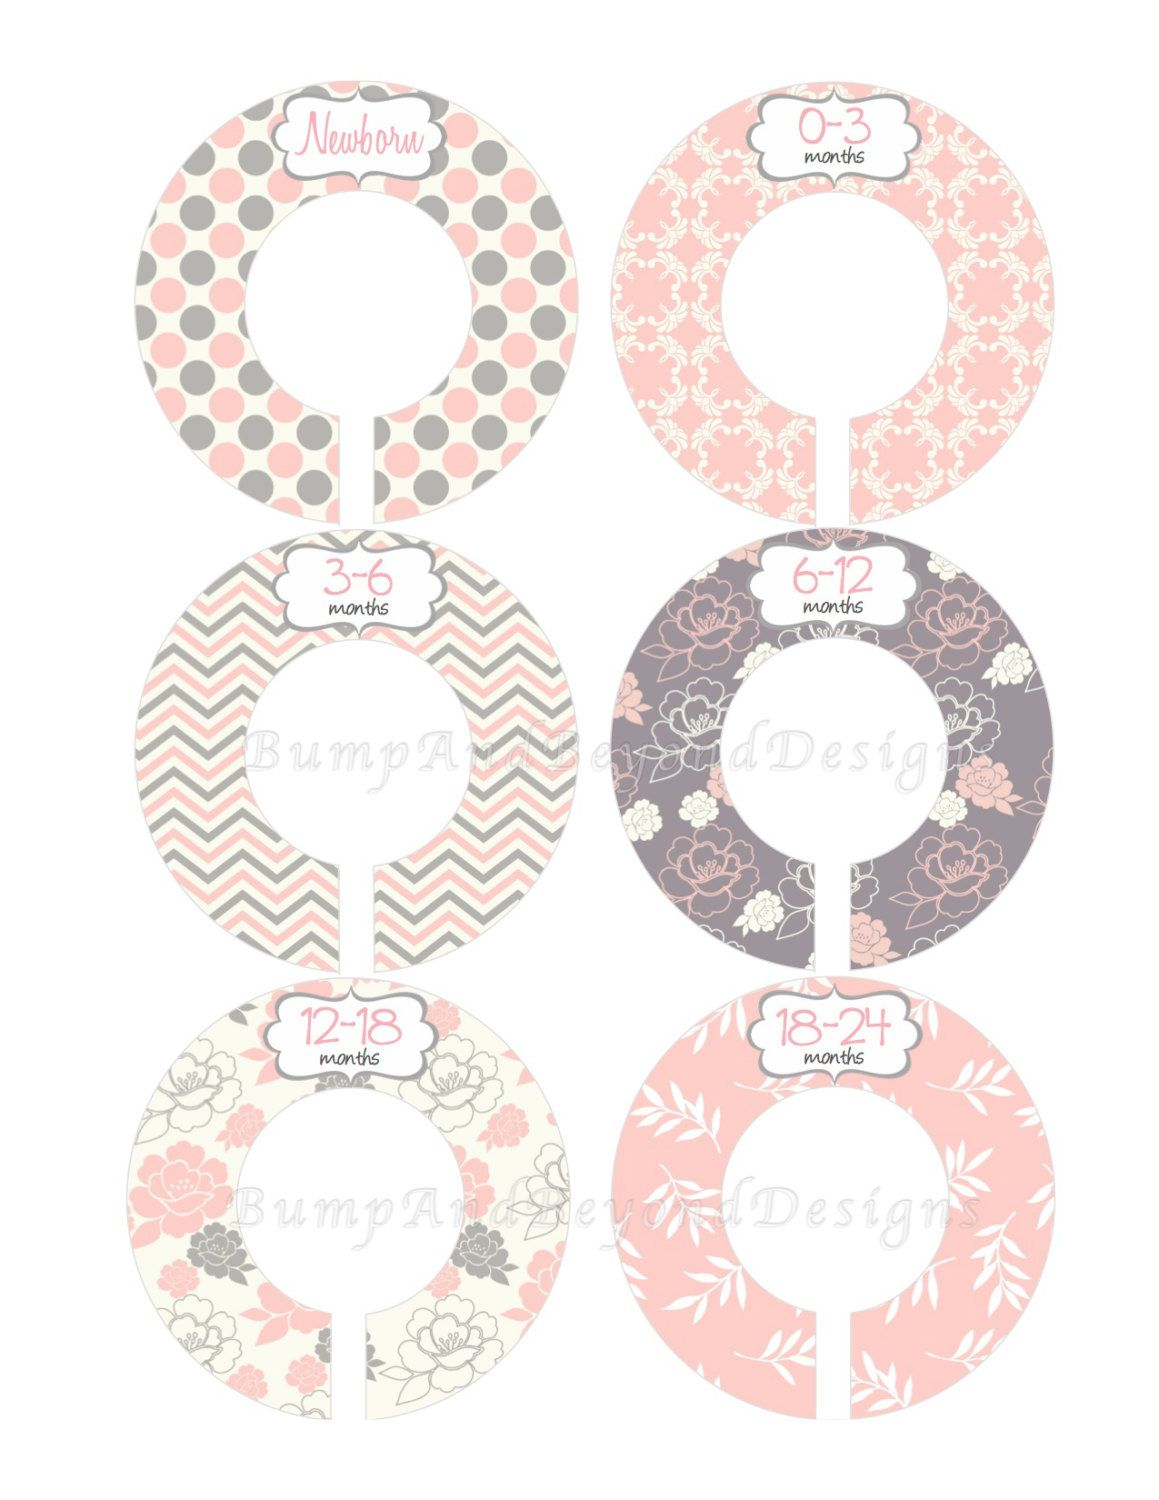 Custom Baby Closet Dividers Girl Pink Grey Floral Nursery Shower Gift Clothes